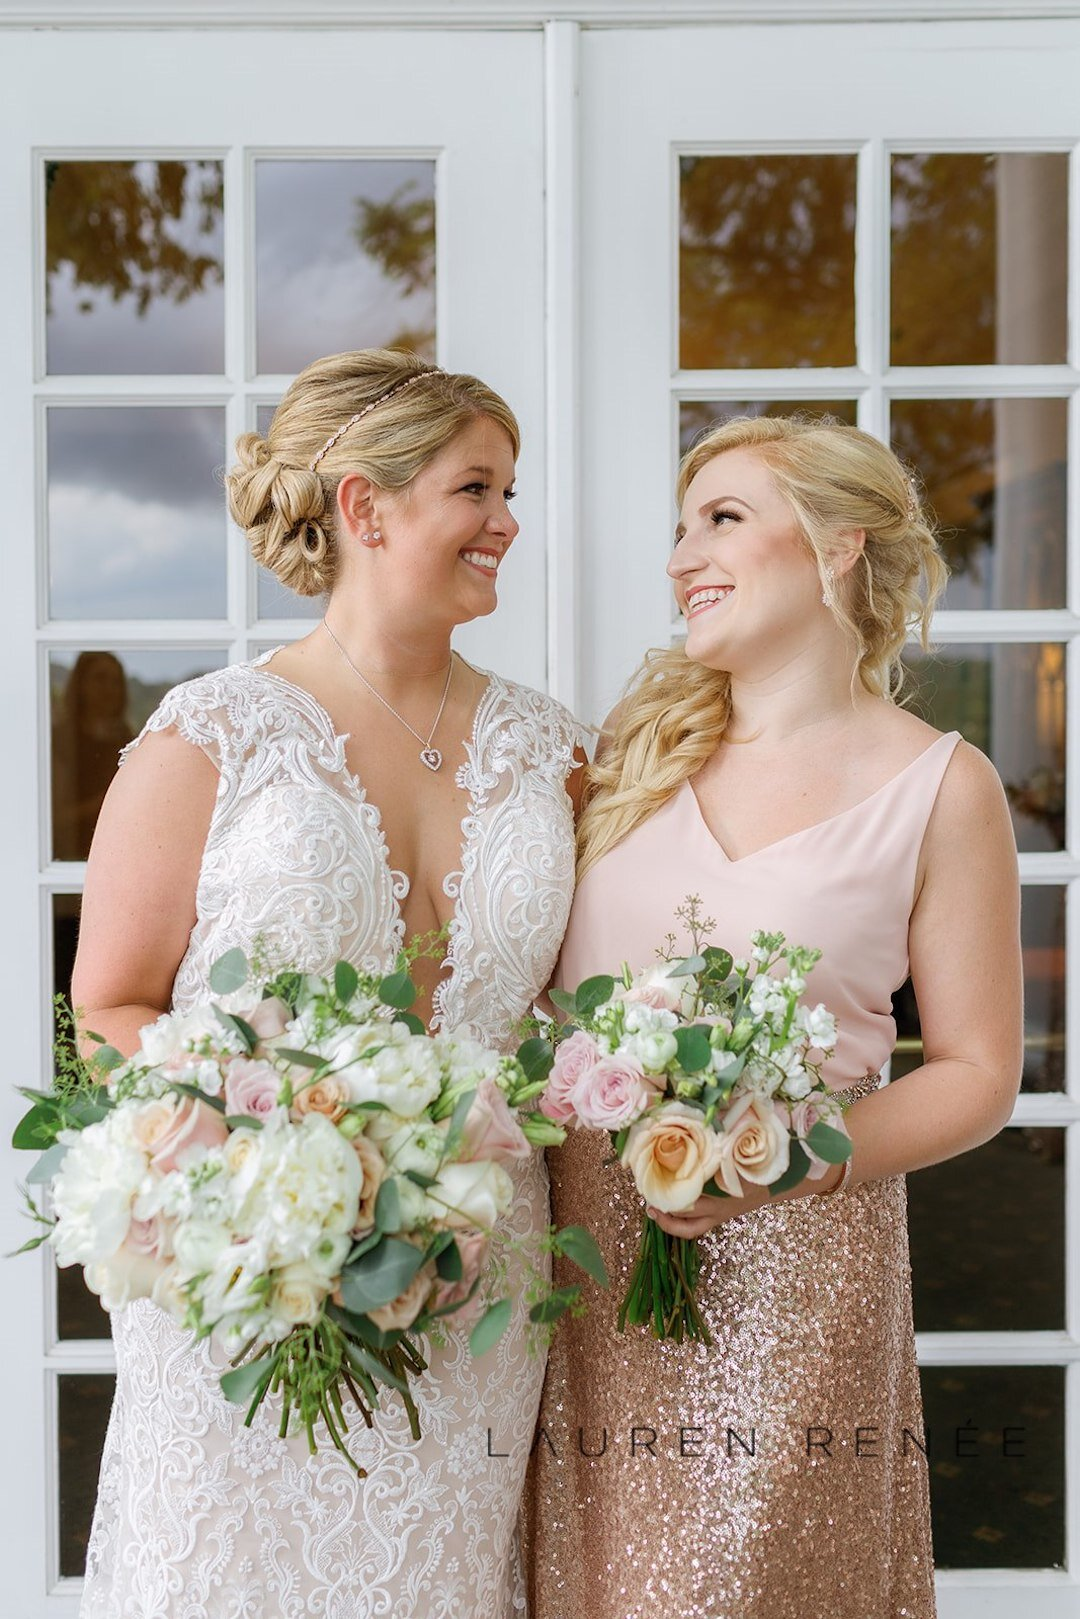 Bridesmaid photo with bride :Romantic Blush Wedding at the Pittsburgh Field Club planned by Exhale Events. See more at exhale-events.com!